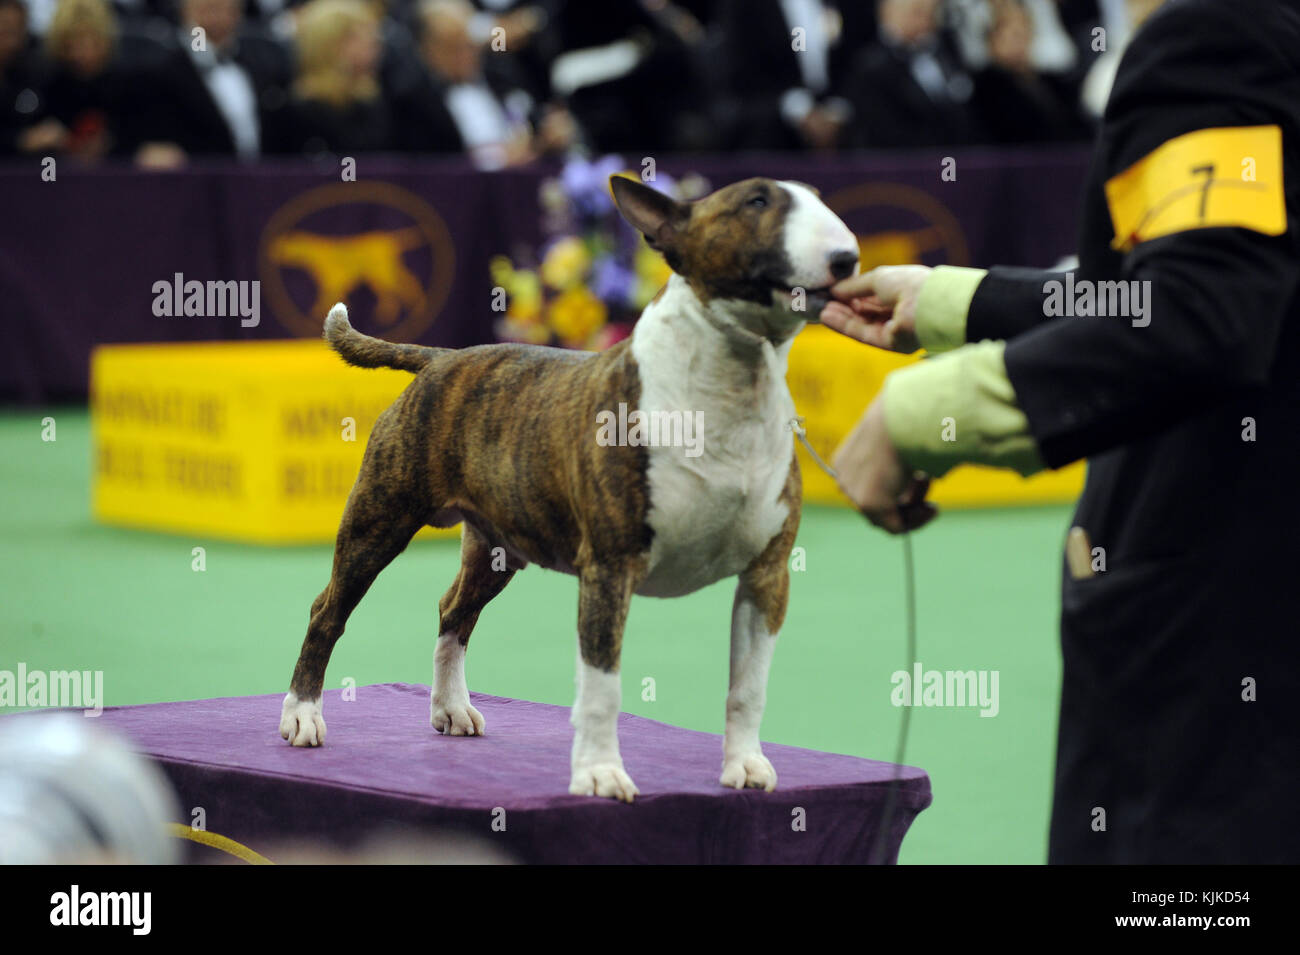 NEW YORK, NEW YORK - FEBRUARY 16: Handler Valerie Nunes-Atkinson and her dog CJ, a German Shorthaired Pointer, win Stock Photo